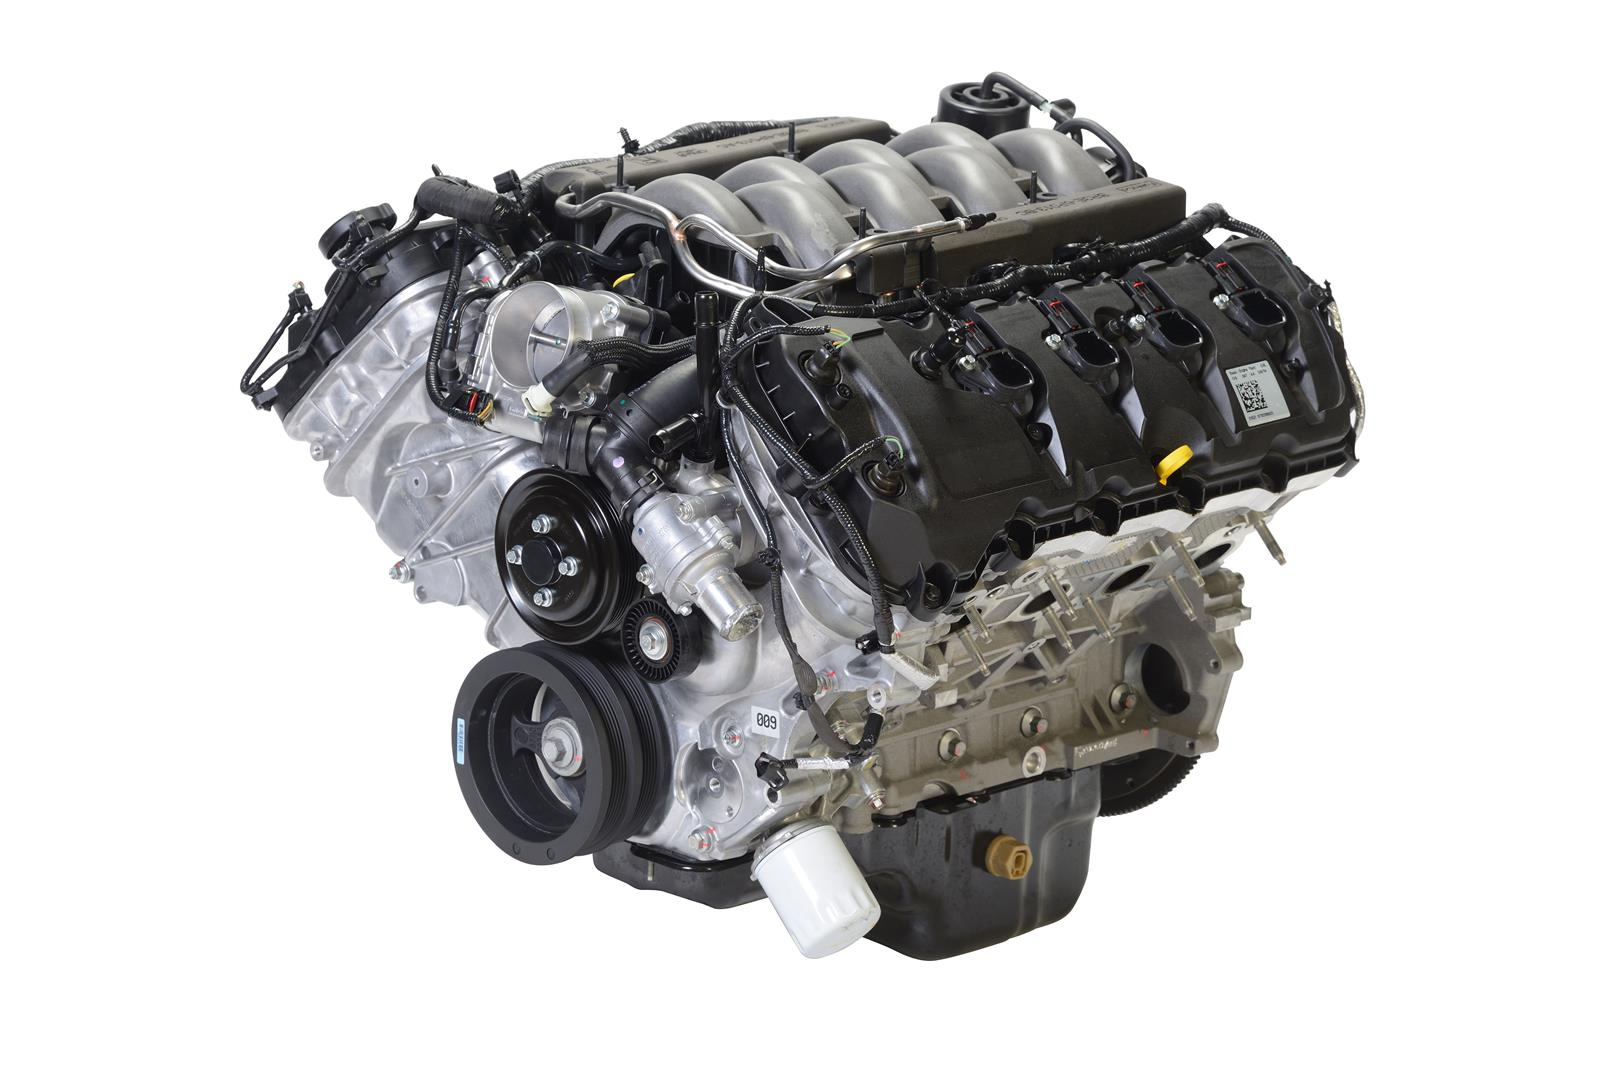 Ford Performance Parts 2015-17 5 0L Coyote 435 HP 32-Valve DOHC Long Block  Crate Engines M-6007-M50A